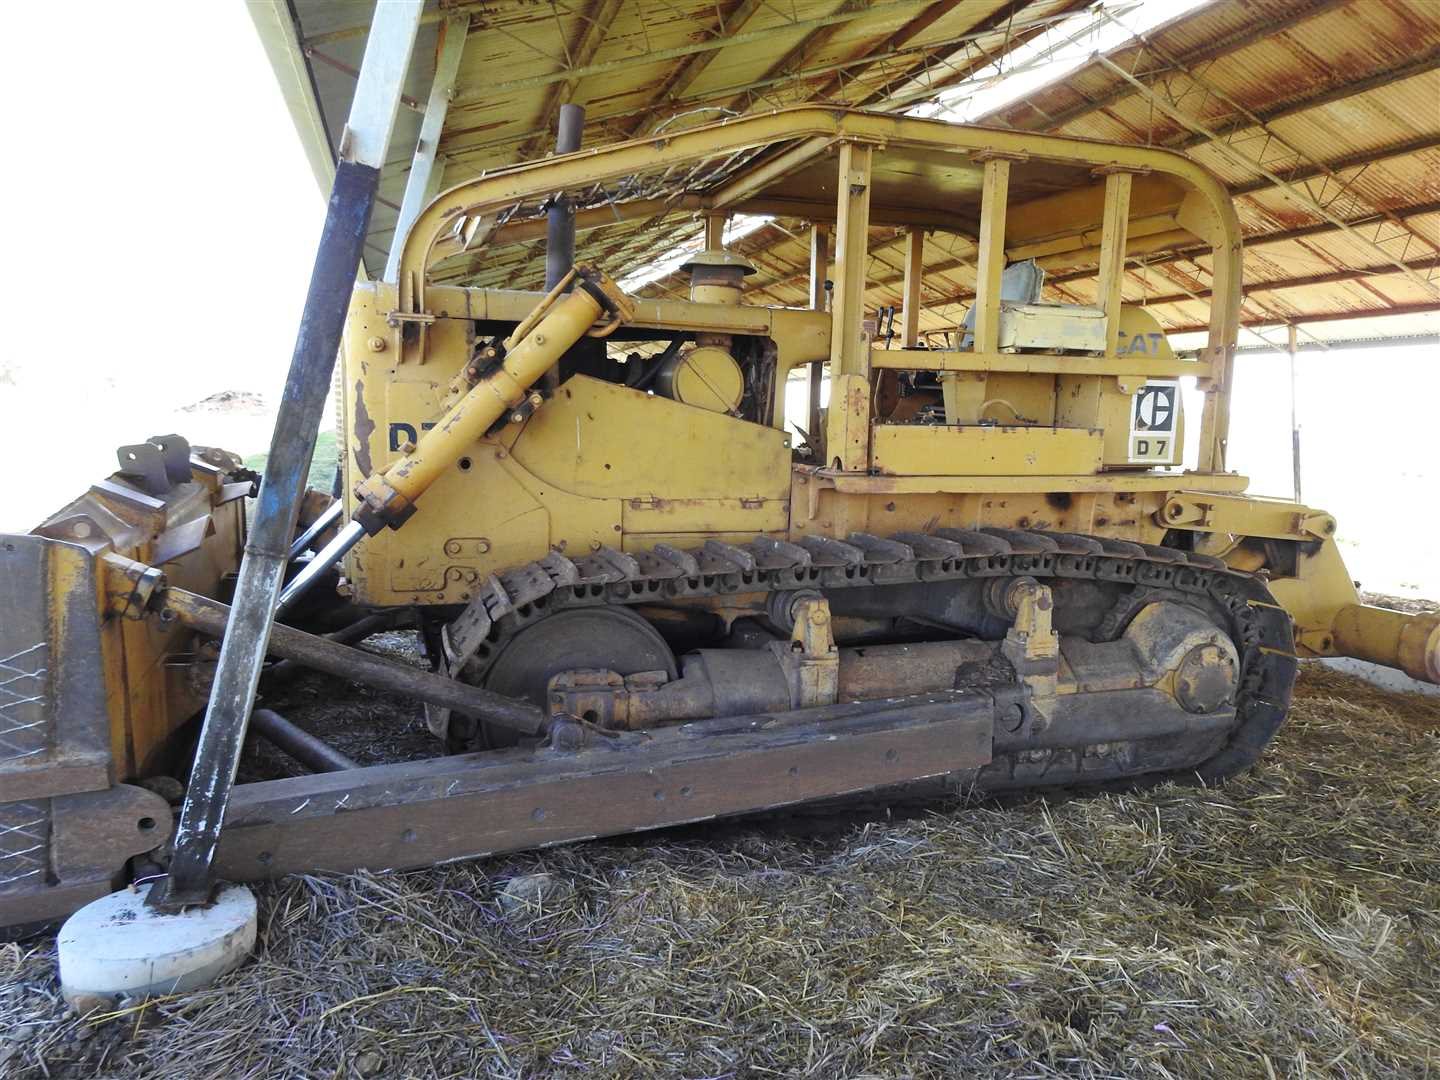 D7 F; s/n 92E1717 Powershift, bull tilt blade, CAT parallelogram ripper